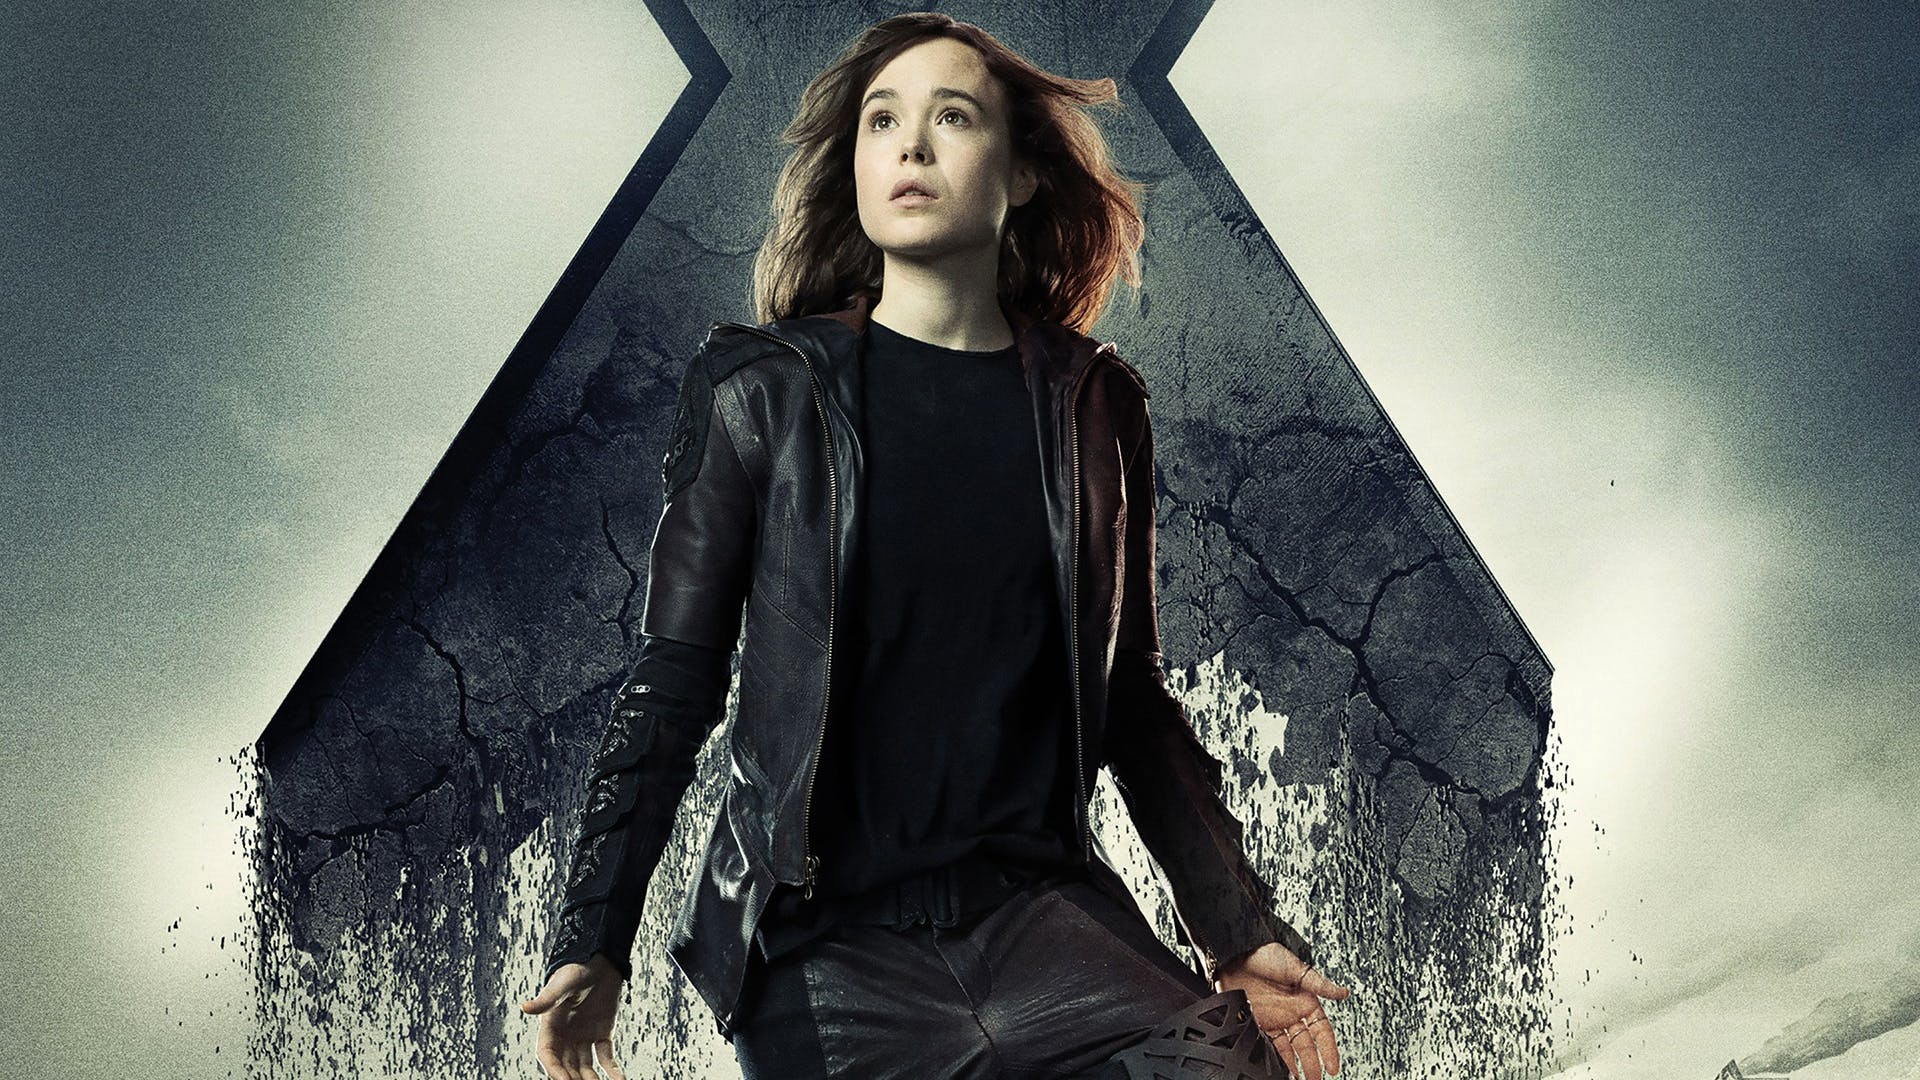 http://images.fandango.com//mdcsite/images/featured/201801/fan_ellenpage_xmendaysoffuturepast_20180109.jpg